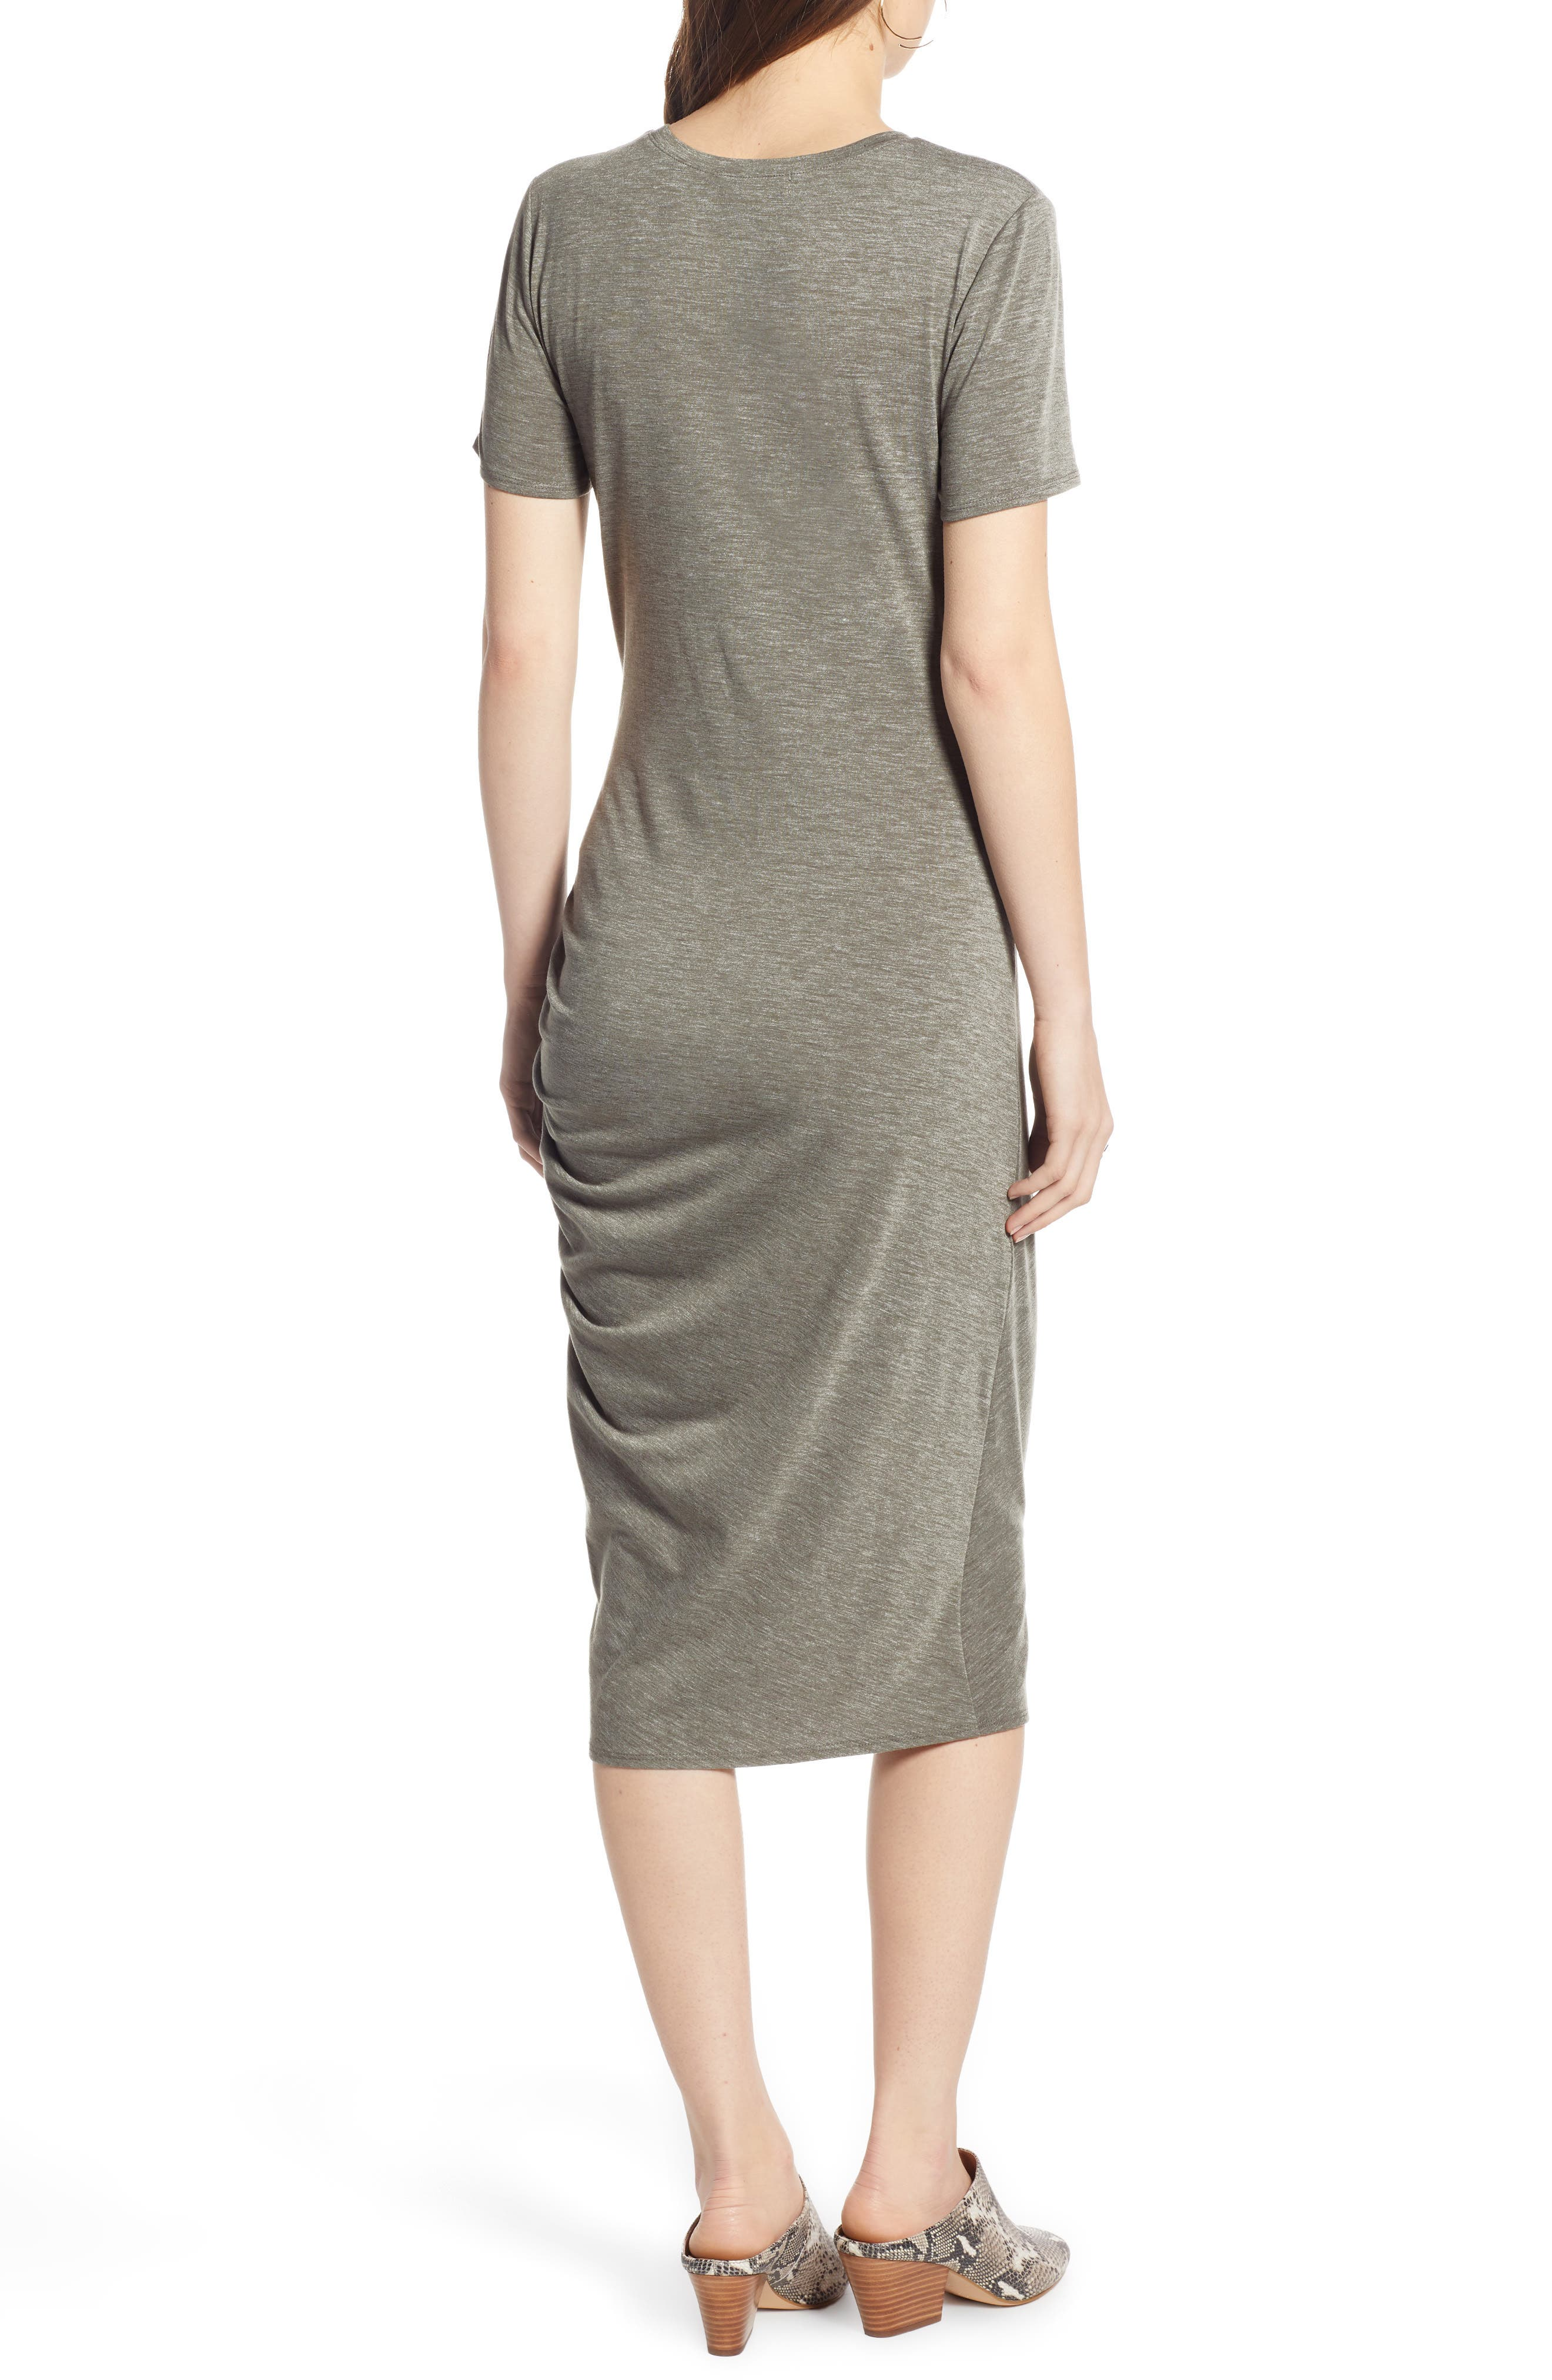 TREASURE & BOND, Side Ruched Body-Con Dress, Alternate thumbnail 2, color, OLIVE SARMA HEATHER